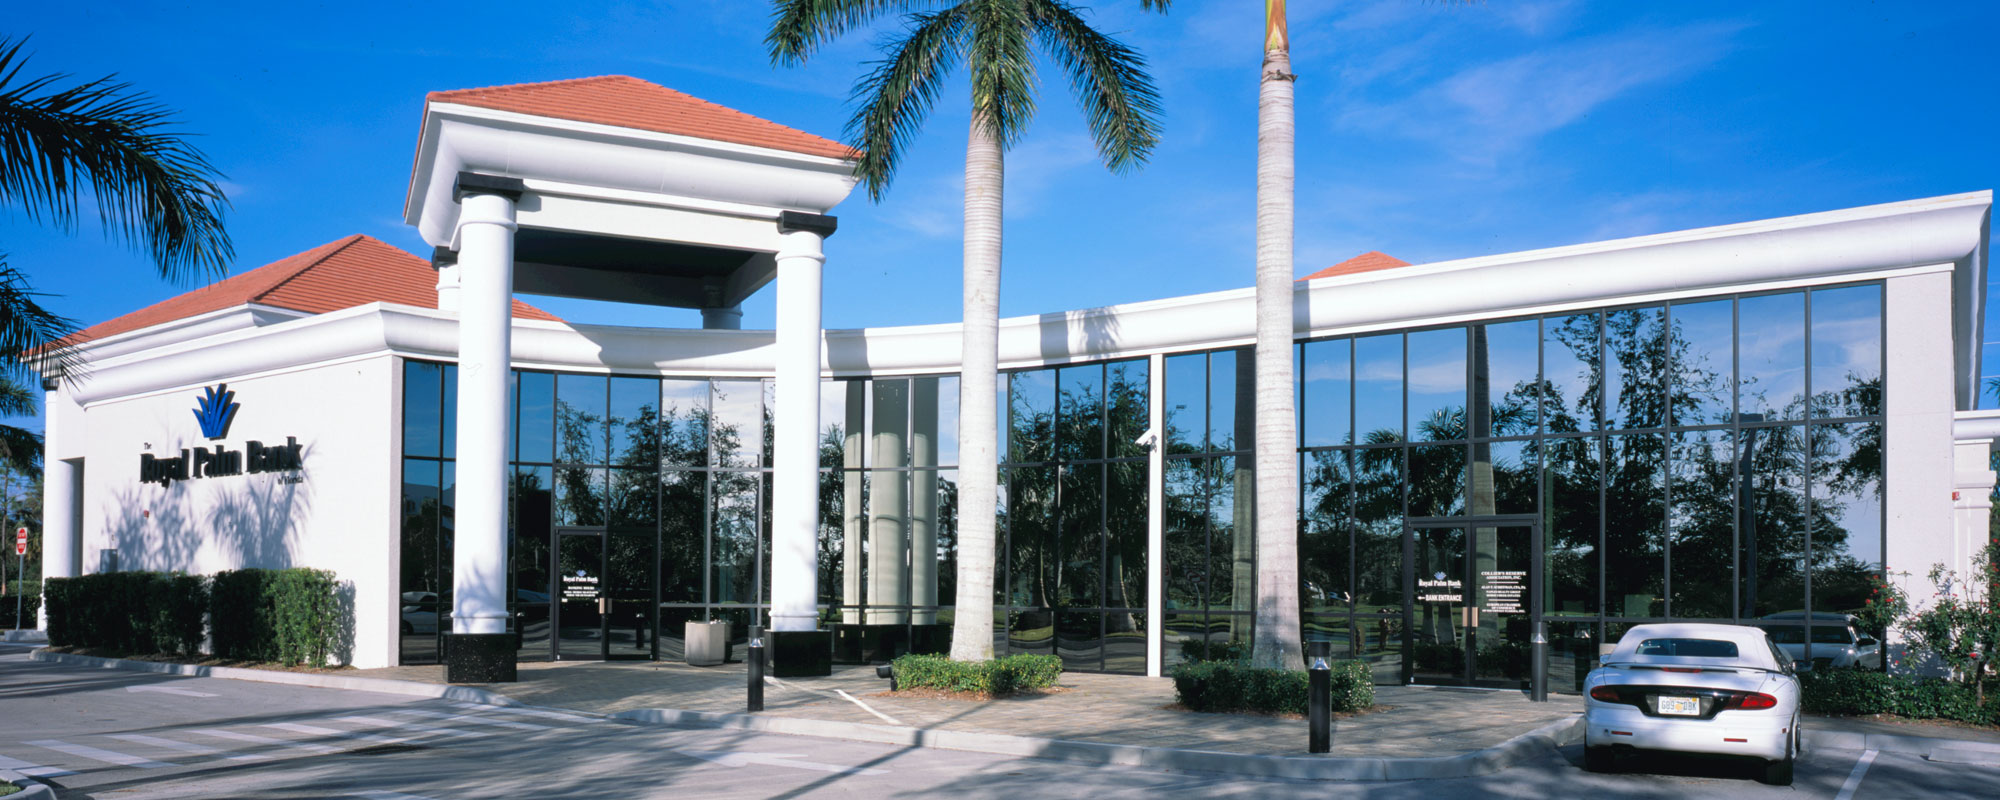 Royal Palm Bank – Naples